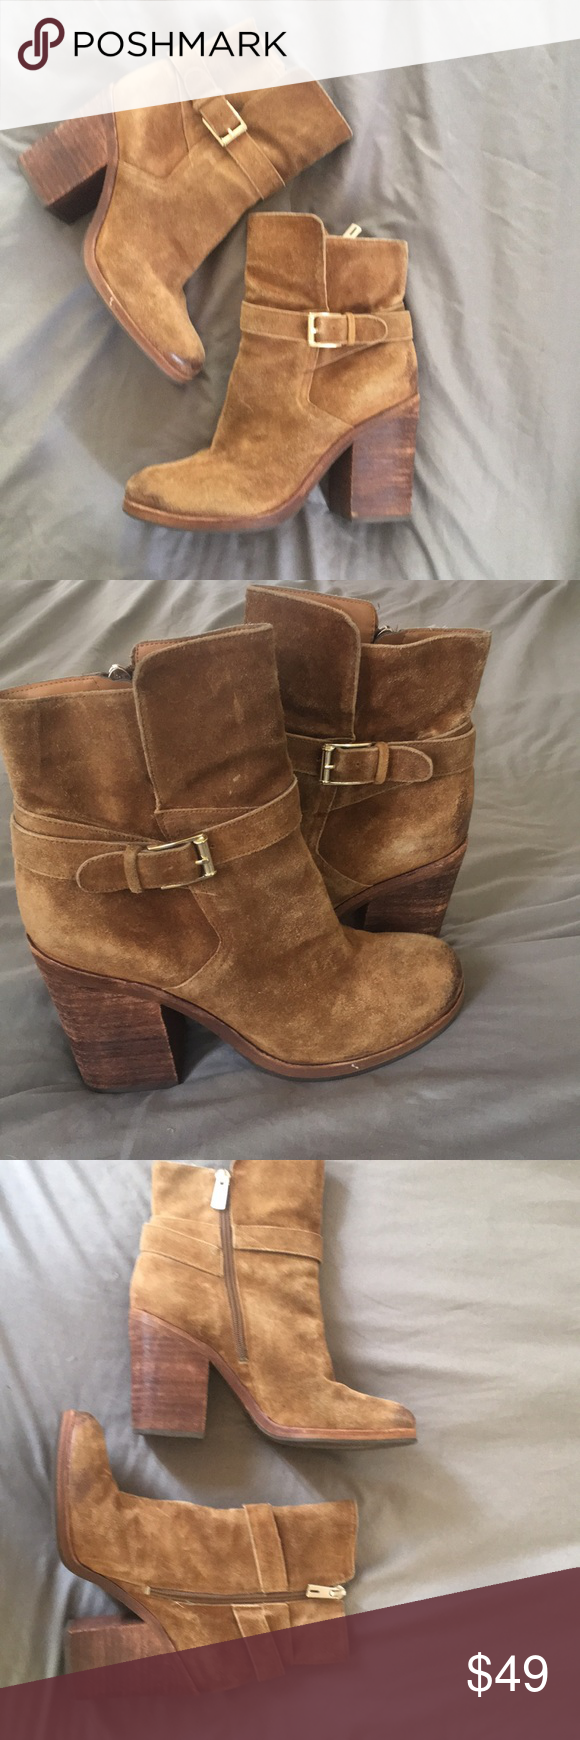 a2b445ec1a57a Sam Edelman  Perry  booties